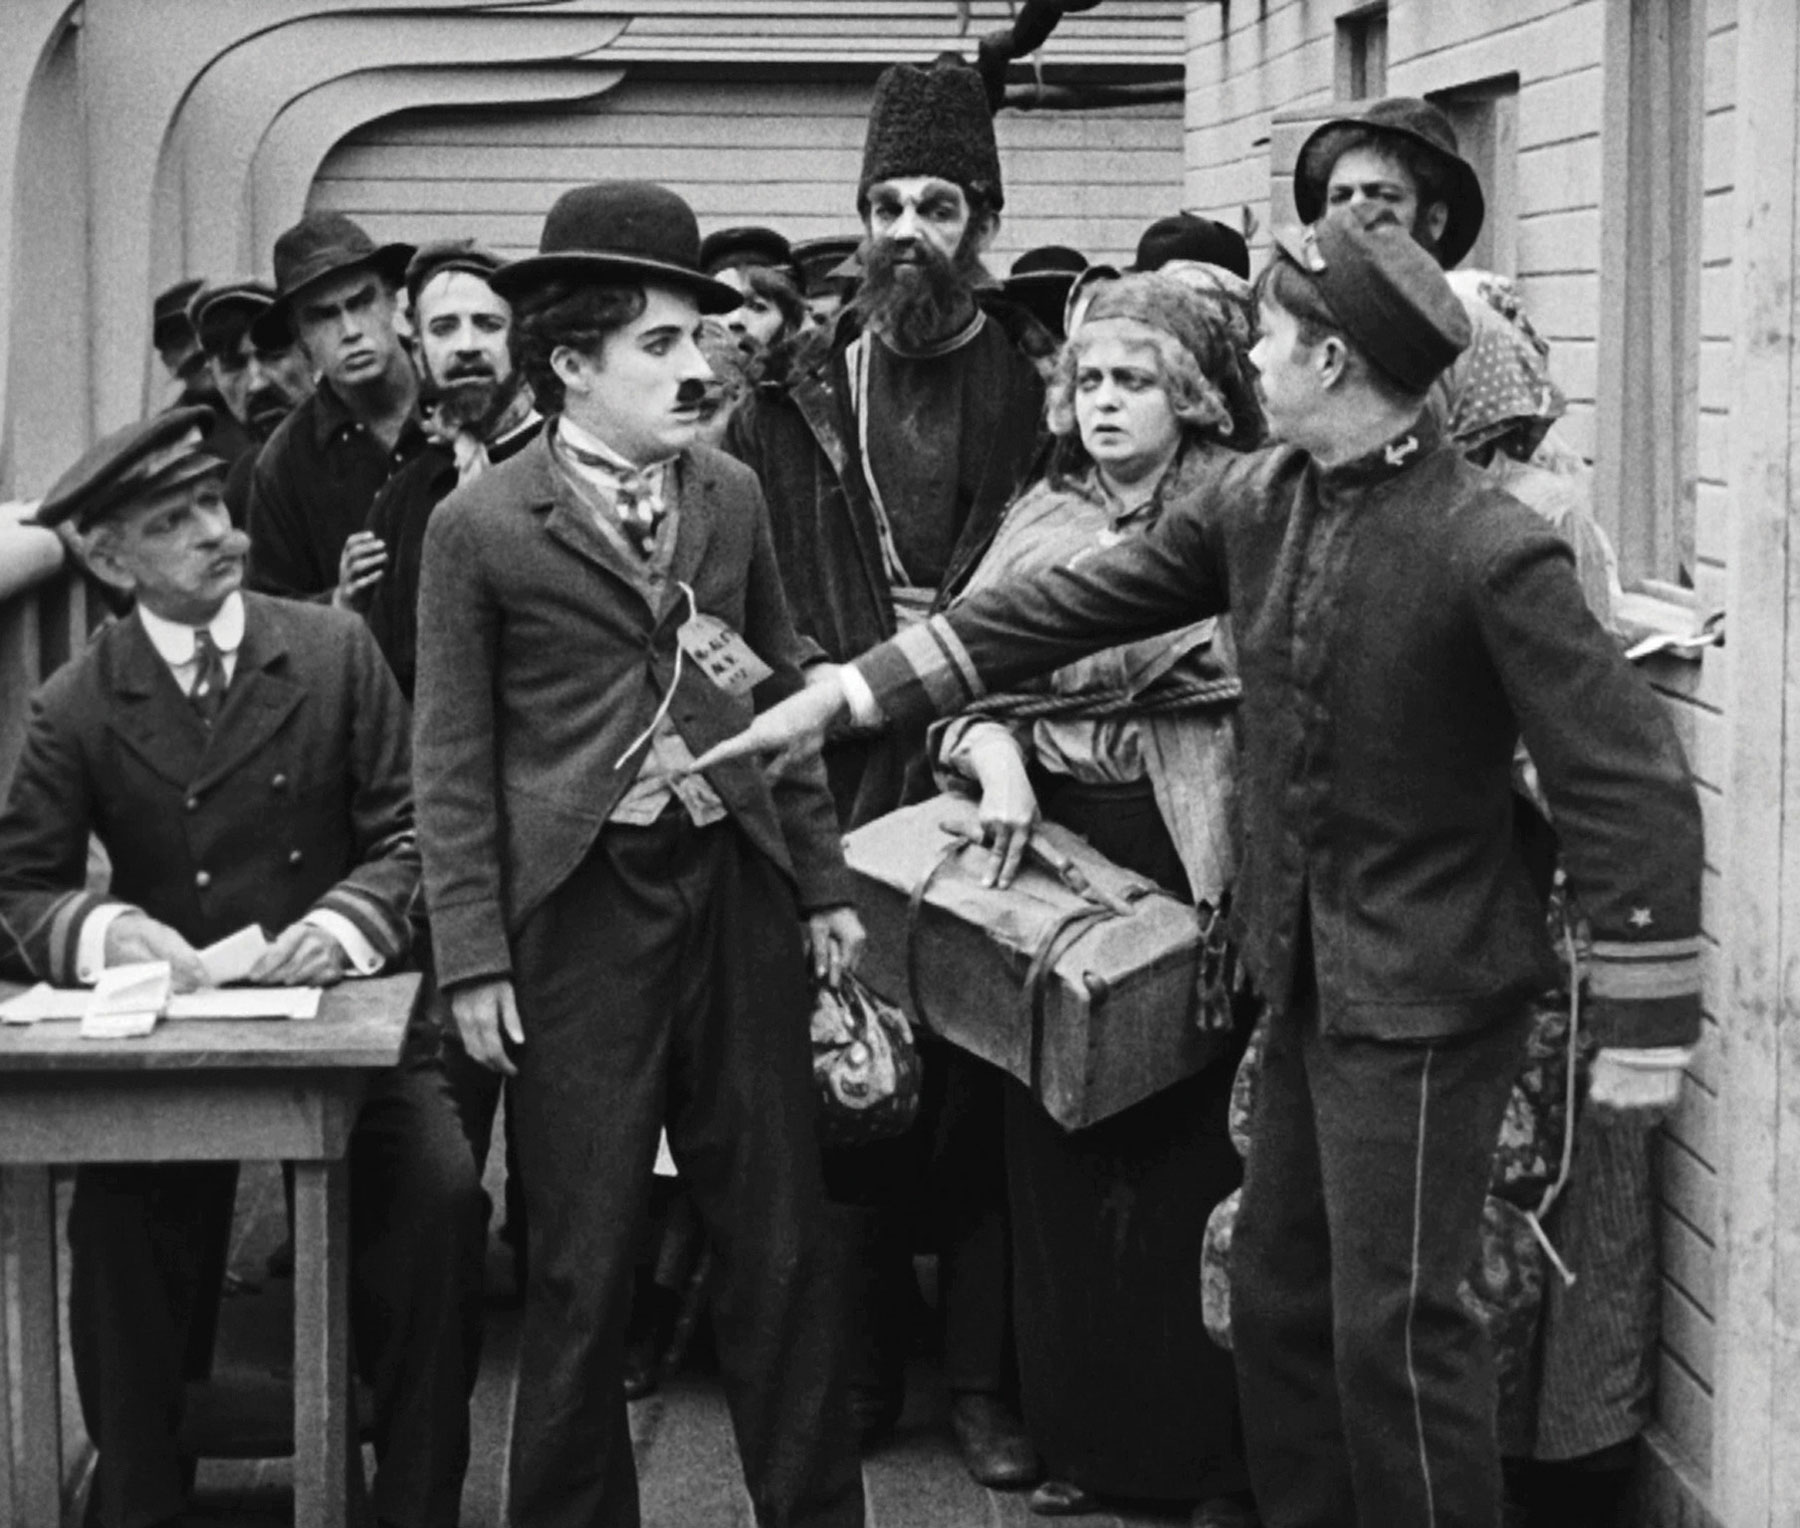 7 Art Cinema | Official Website | Charlie Chaplin - 1917 - The Immigrant | 11 | Film Photograph